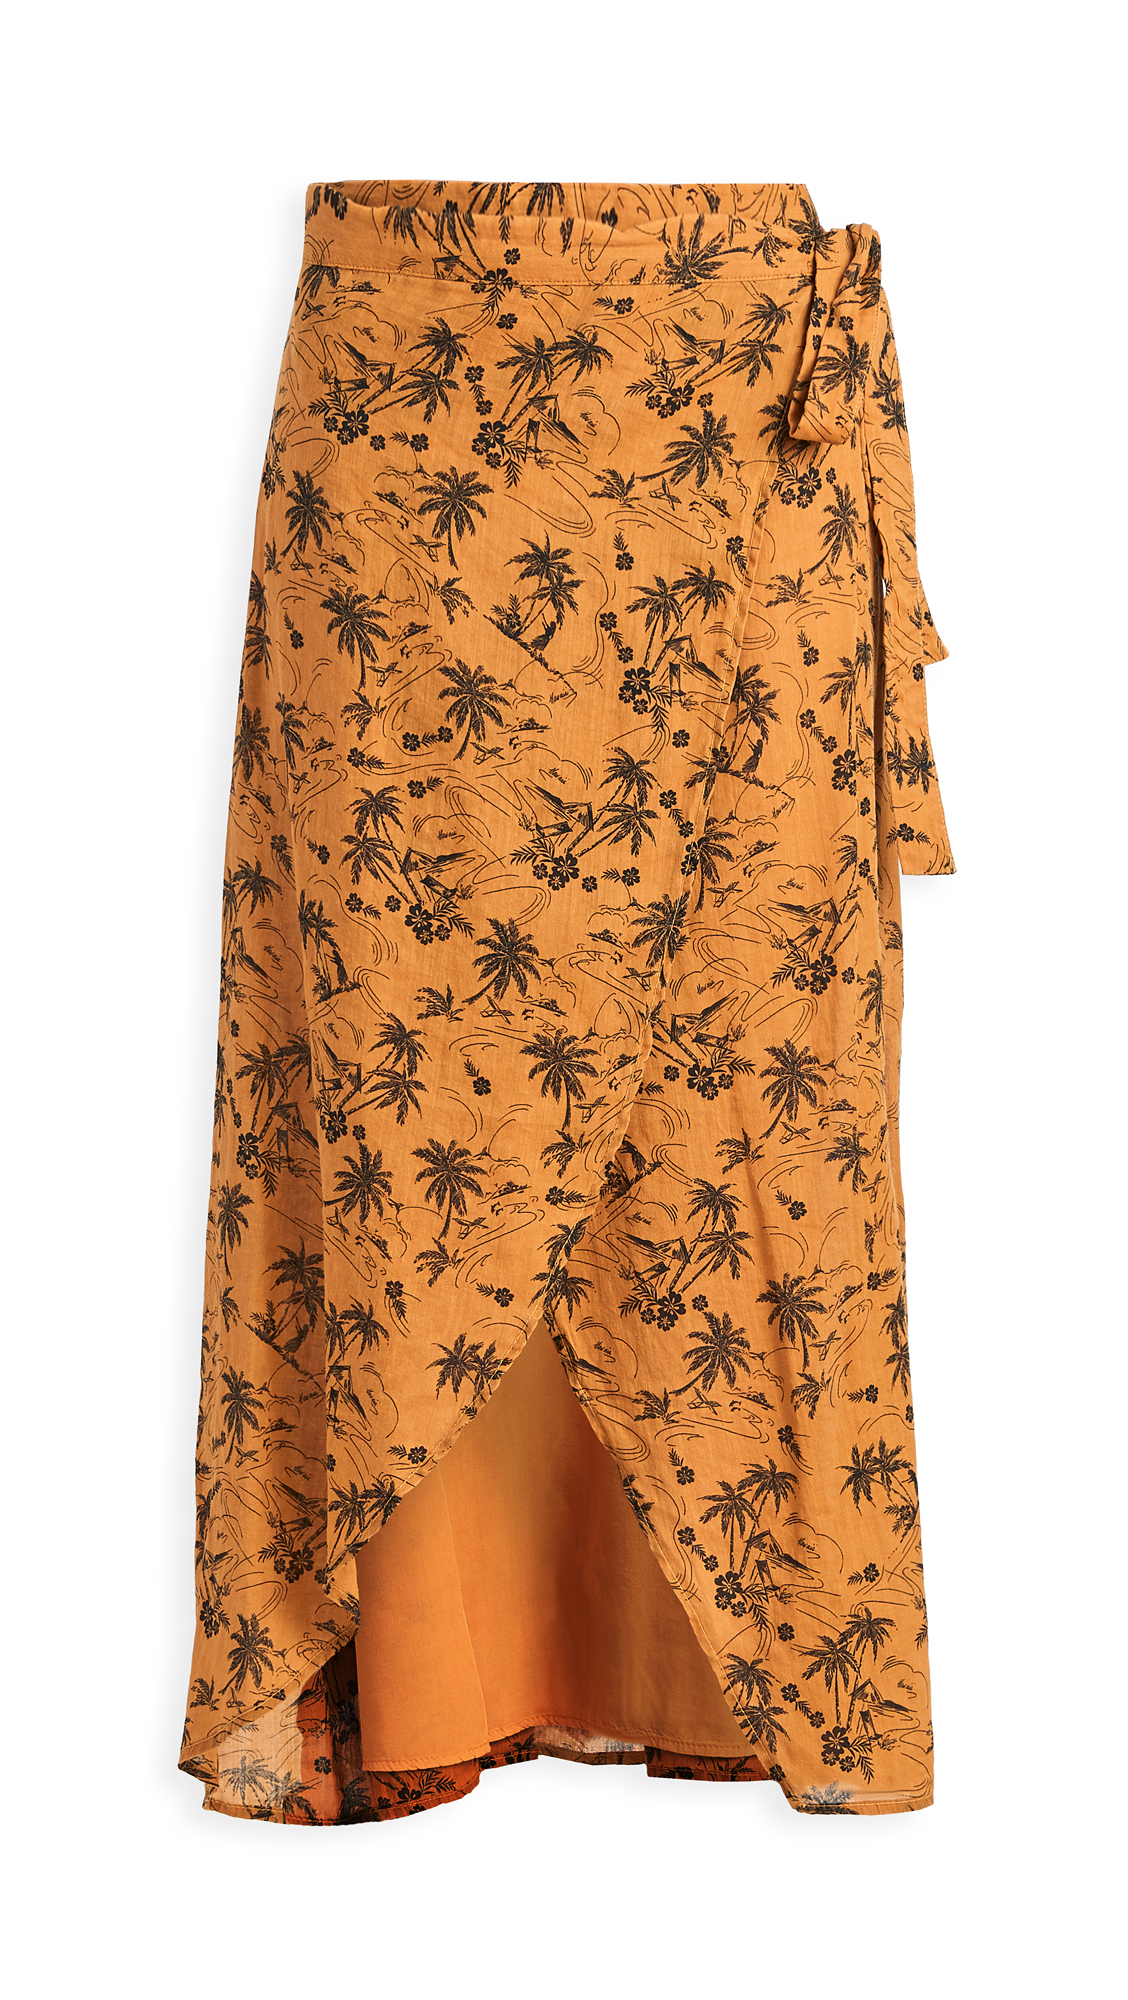 James Perse Island Print Wrap Skirt